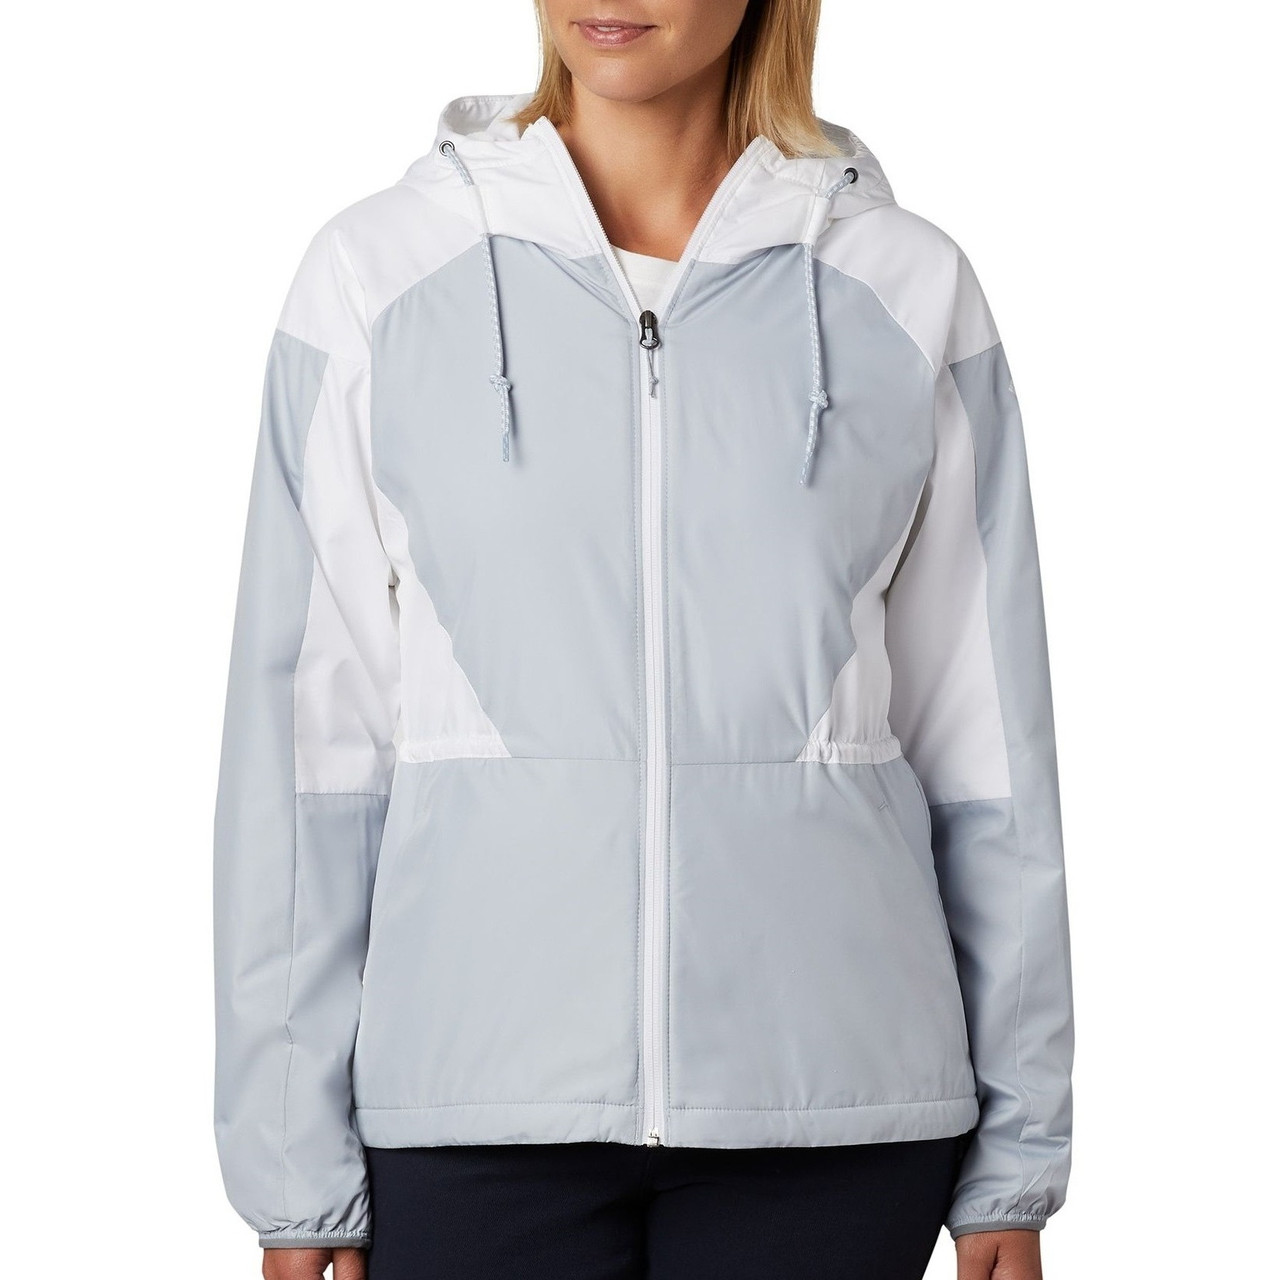 Женская ветровка Columbia Side Hill Lined Windbreaker